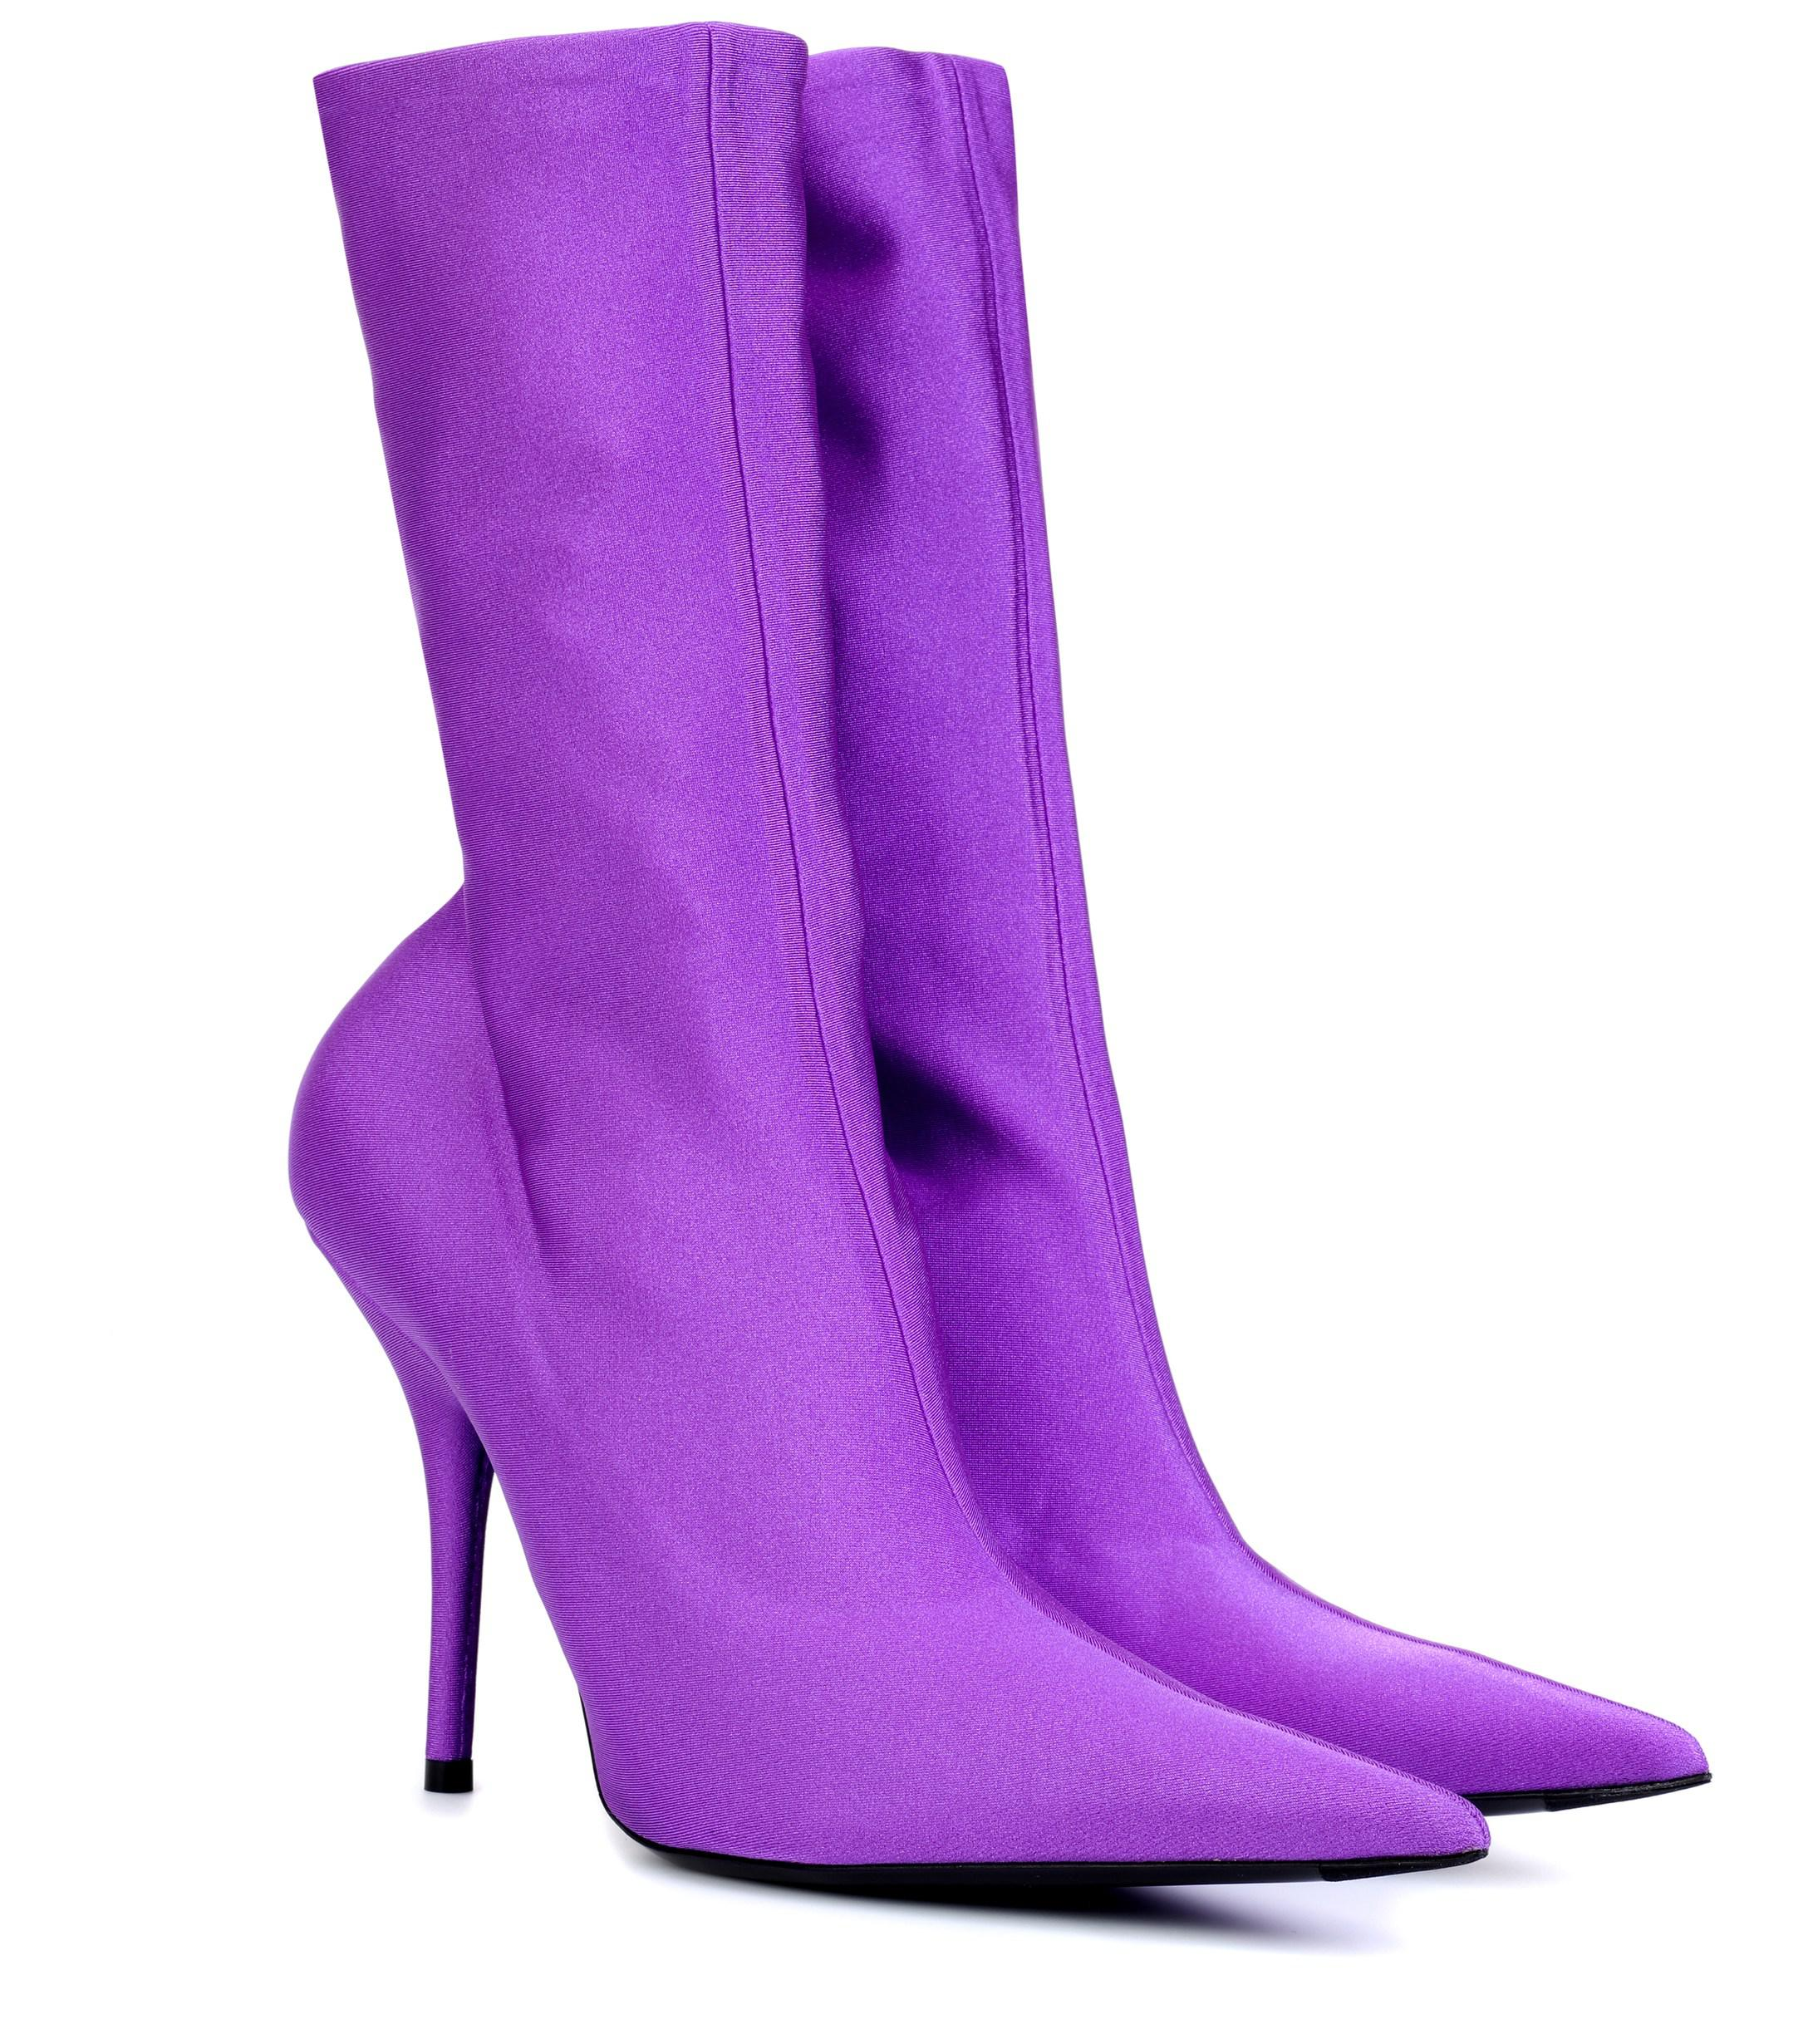 a81e5ad3626 Balenciaga Knife 110 Boots in Purple - Save 50% - Lyst